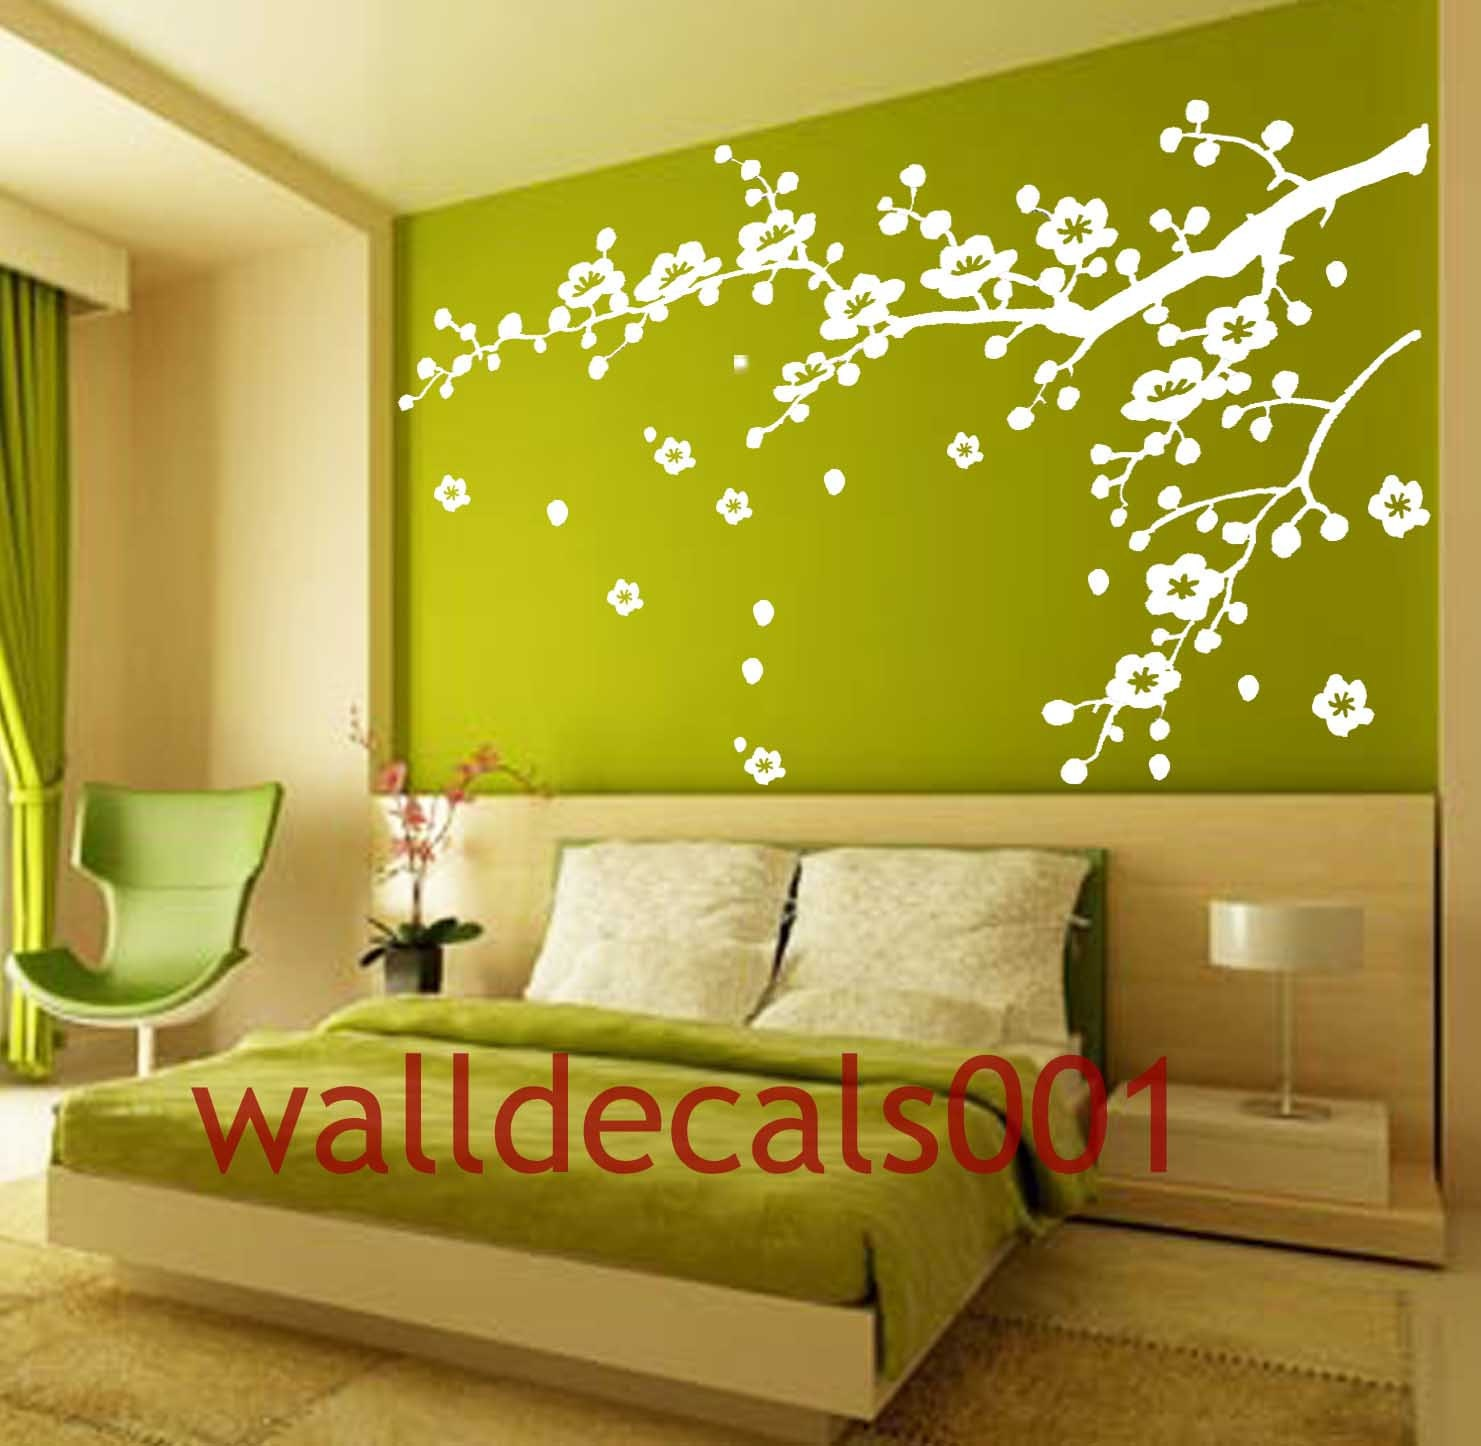 Umbra Blossom Wall Decor : Wall decor decals rumah minimalis